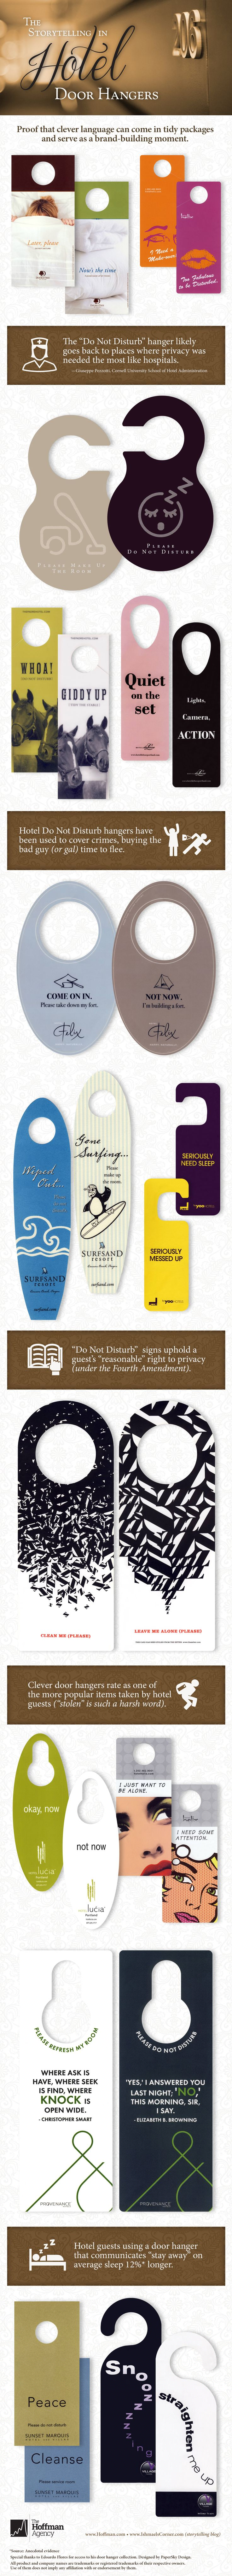 If You Think Twitter is Tight Quarters, Try Storytelling in a Door Hanger #infographic #Twitter #Marketing